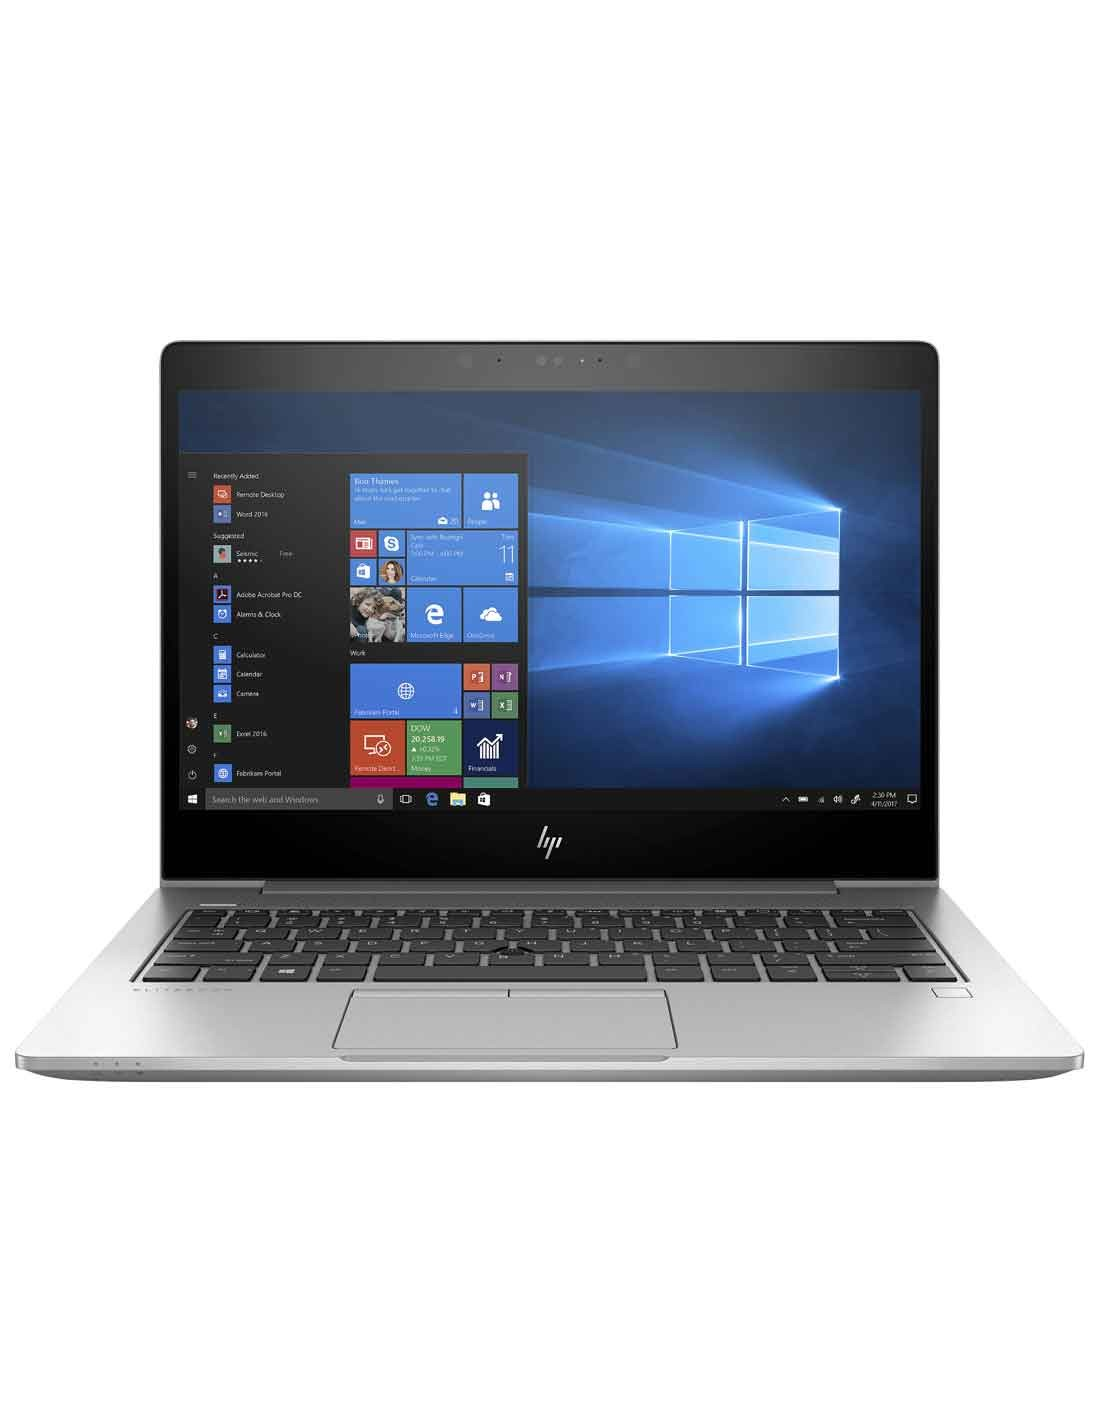 HP EliteBook 830 G5 Notebook i5 images and photos in Dubai Laptop store